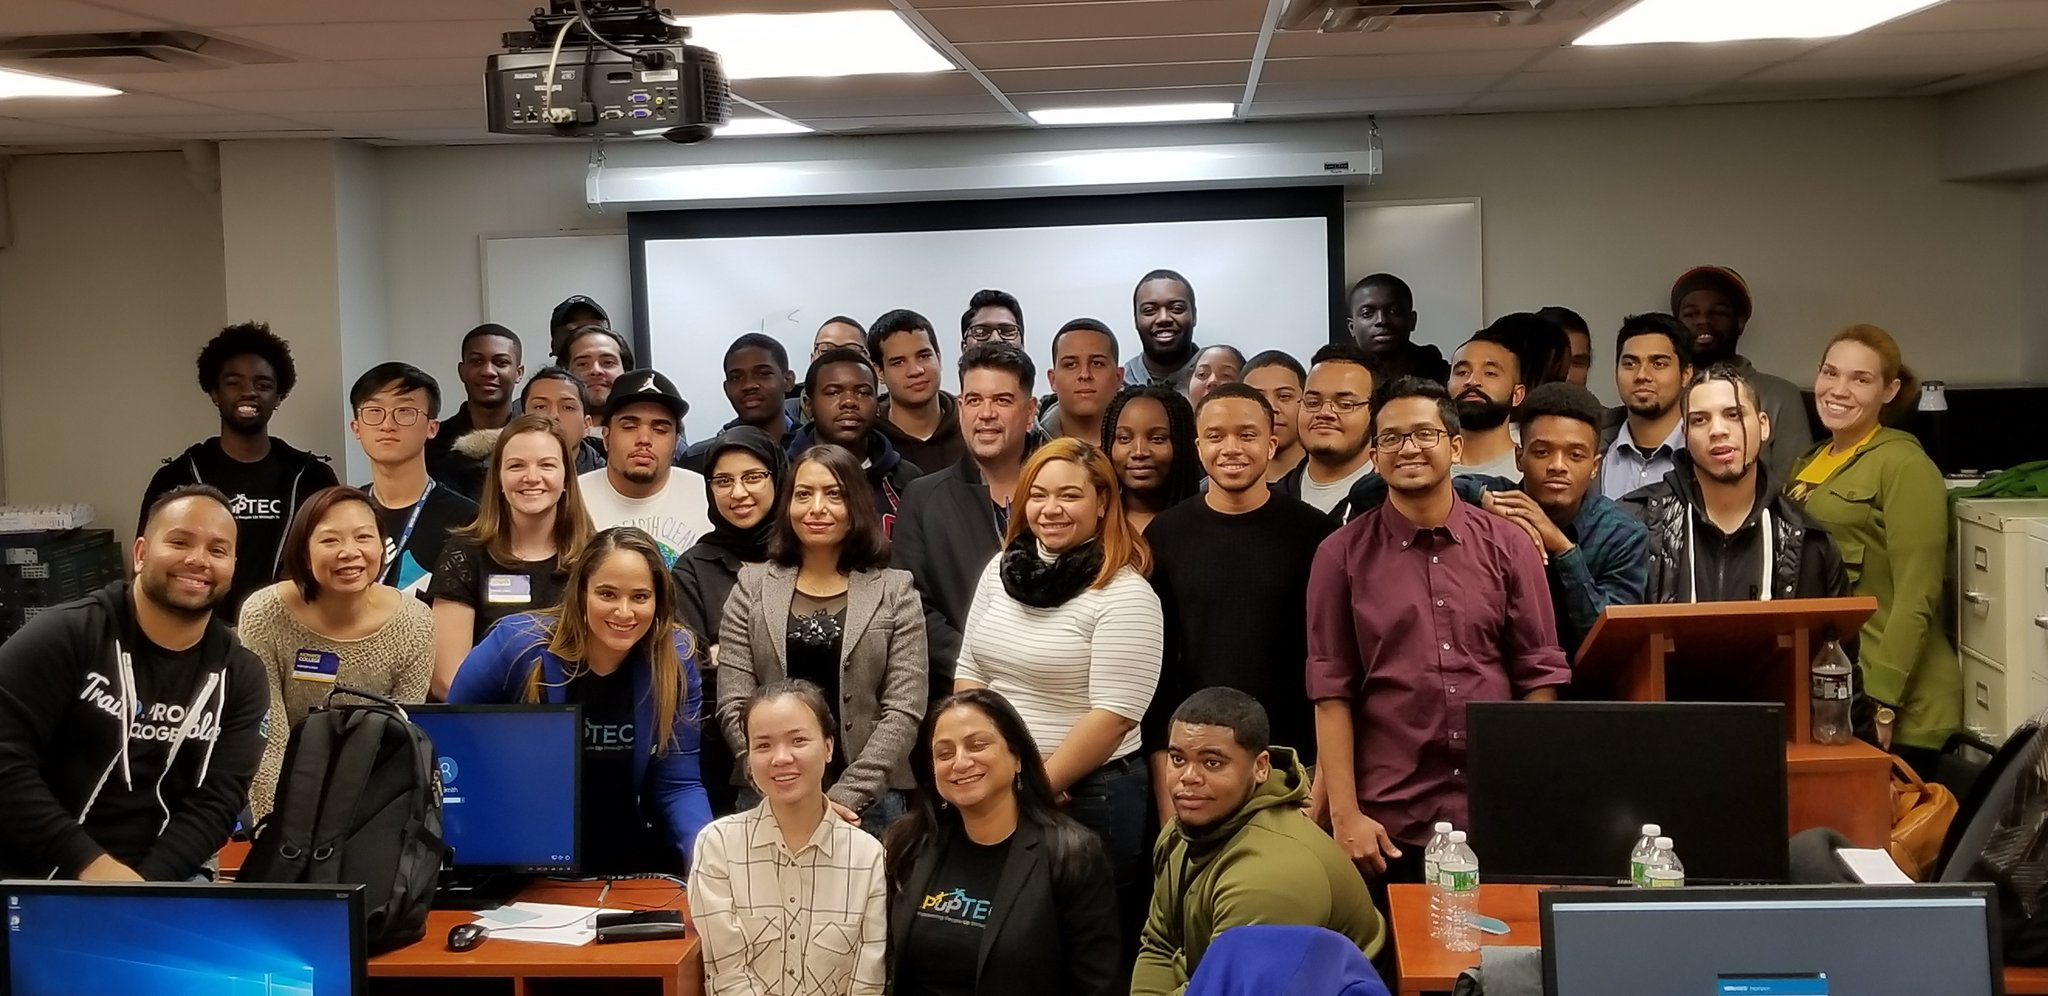 PepUp Tech Boot Camp, Monroe College, New York. NiM's Shakil Kamran (front Row Left) and Saray Rosales (front row third from left, in Blue) are PepUp Tech Alumni, who volunteered at the recent PepUp Tech Bootcamp.